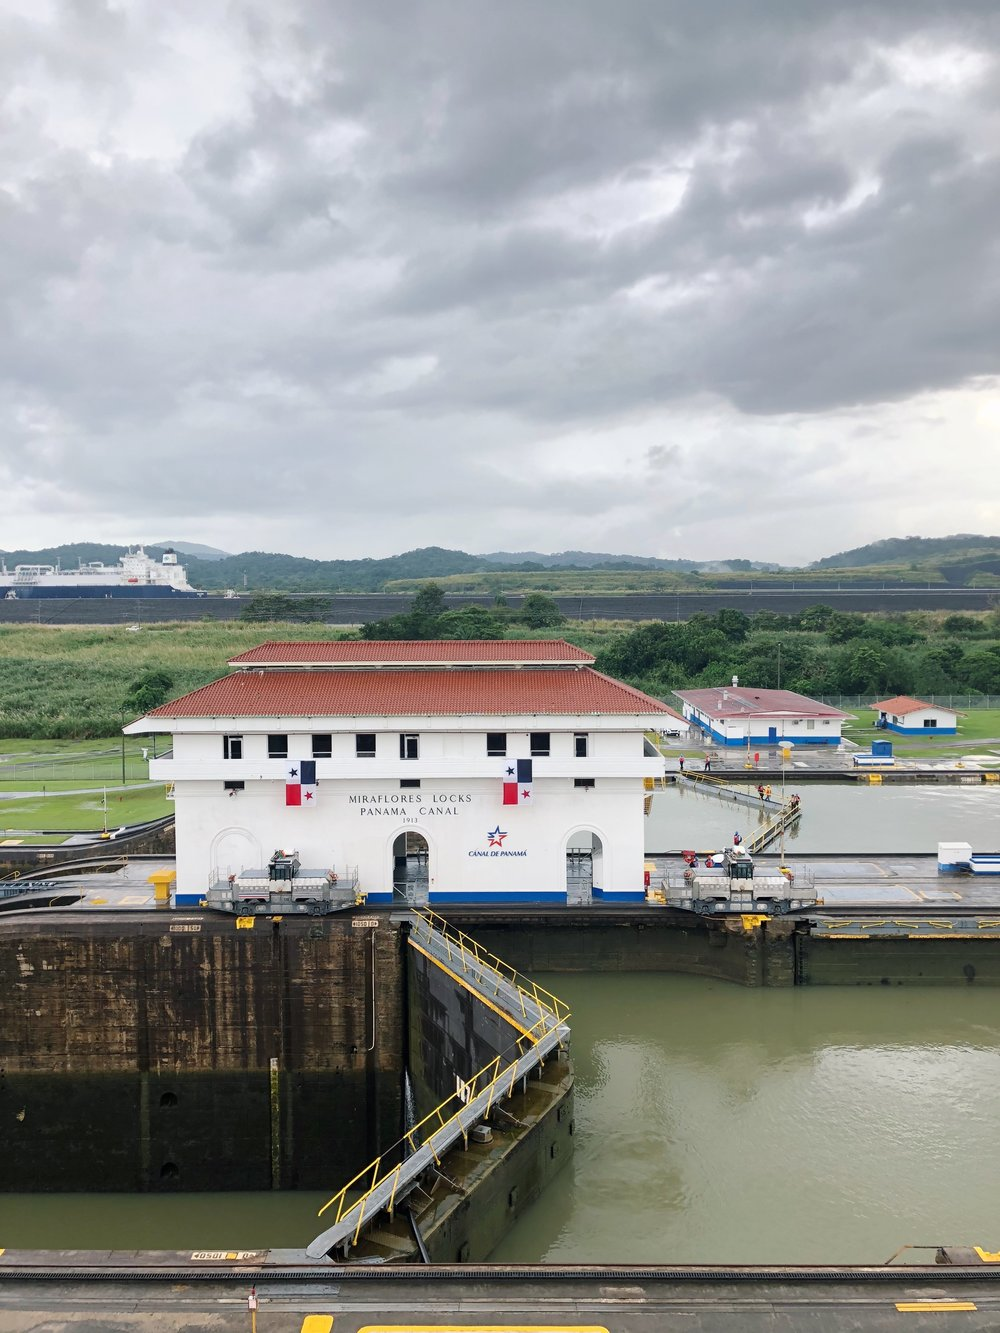 View of the Miraflores locks, awaiting the ship to pass through (based on the water levels)